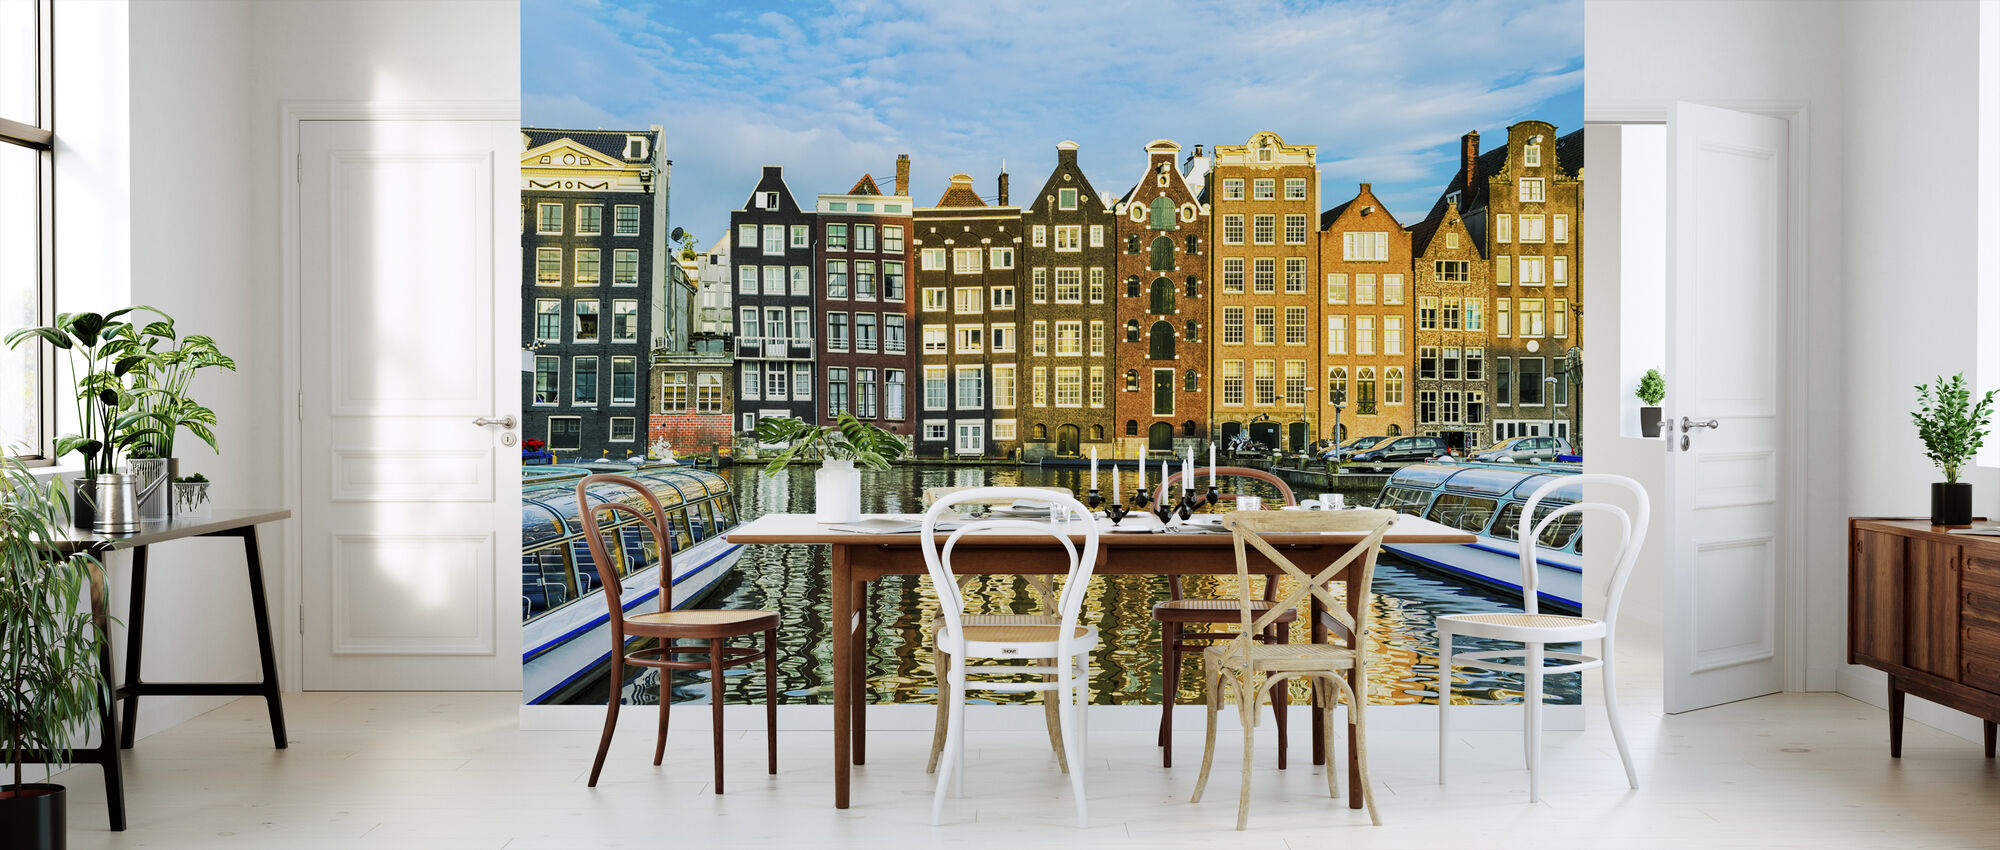 Traditional Houses of Amsterdam, Netherlands - Wallpaper - Kitchen